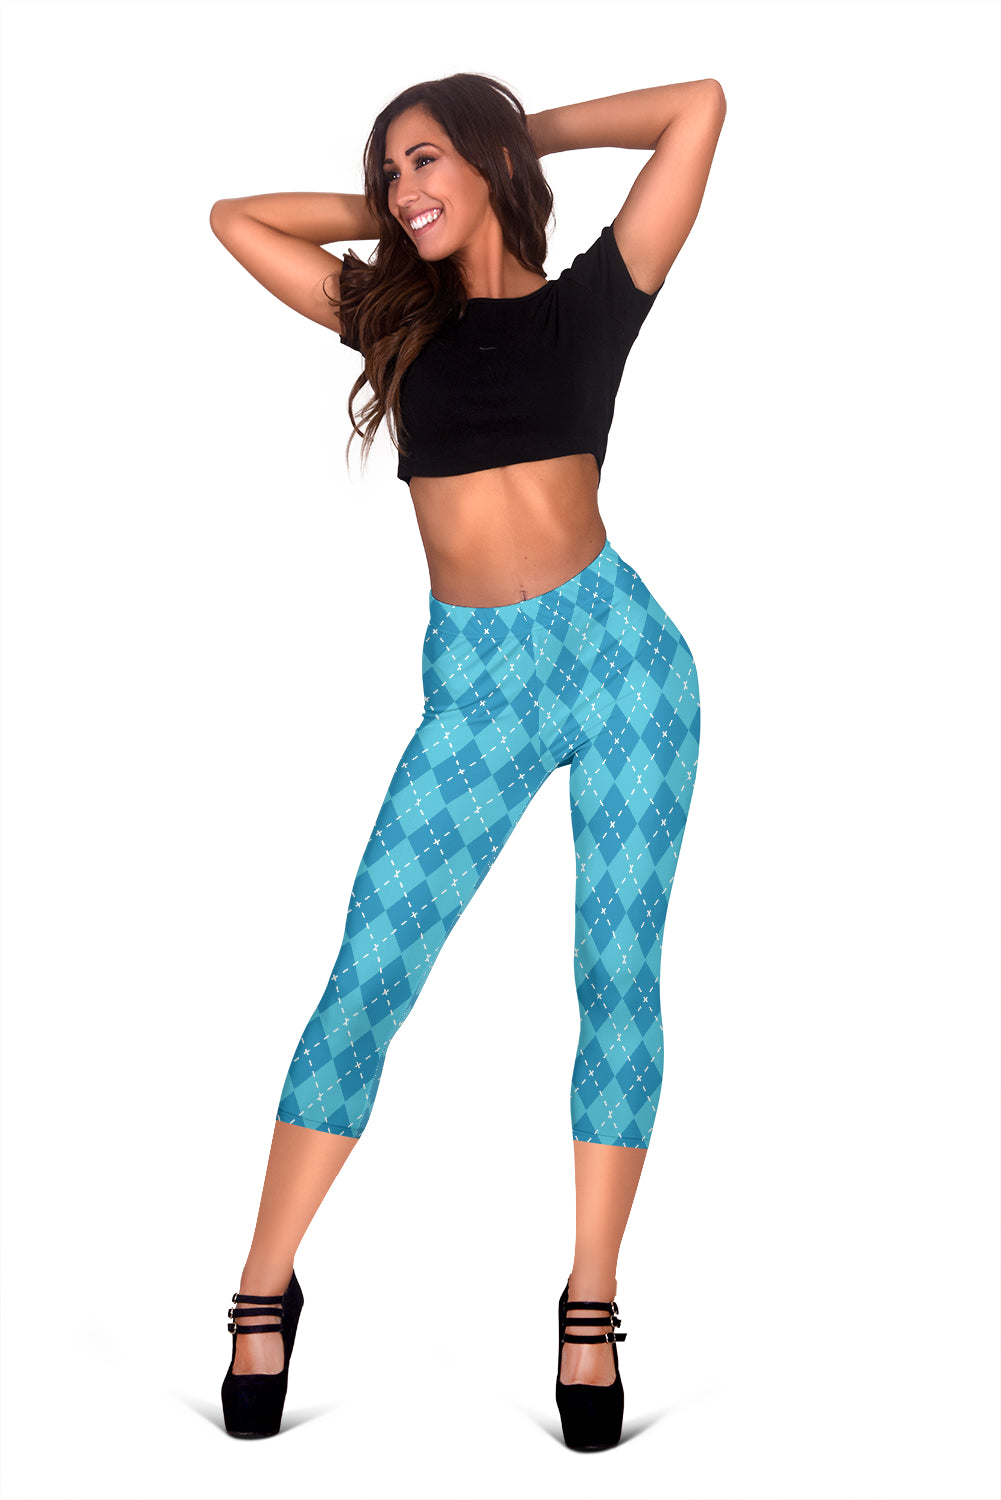 Blue Argyle Women's Capris Leggings